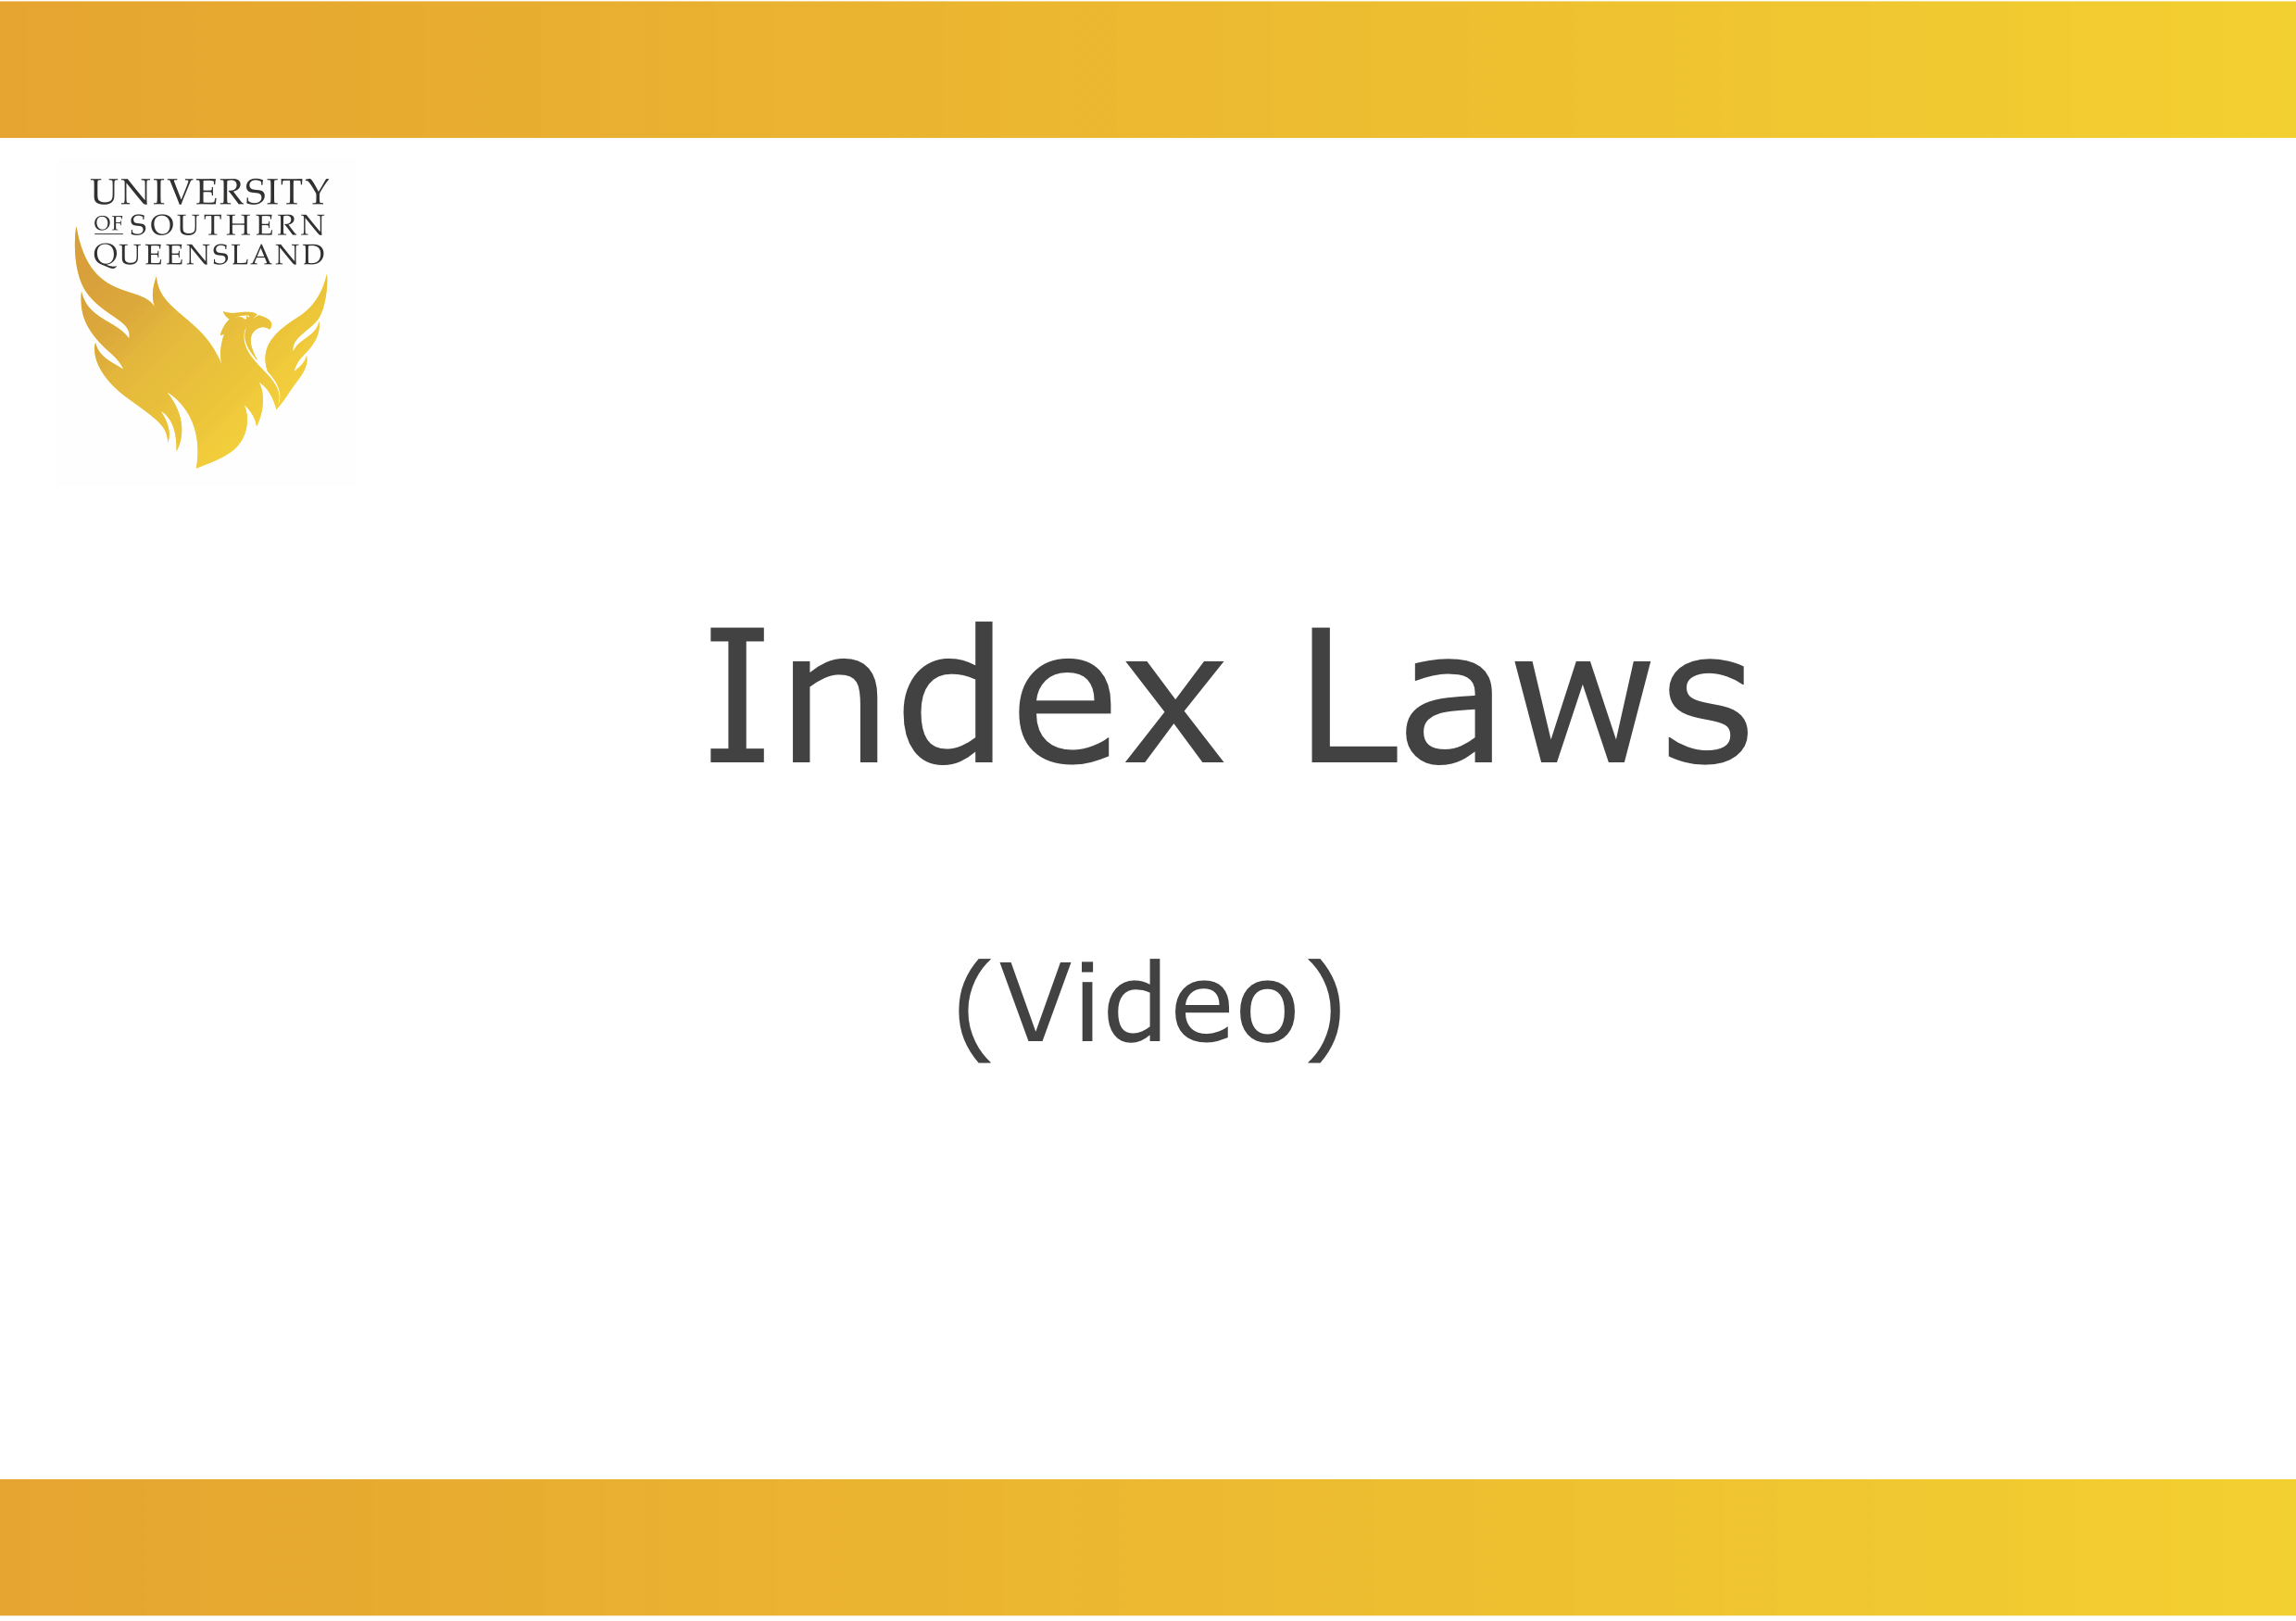 image for the index laws video